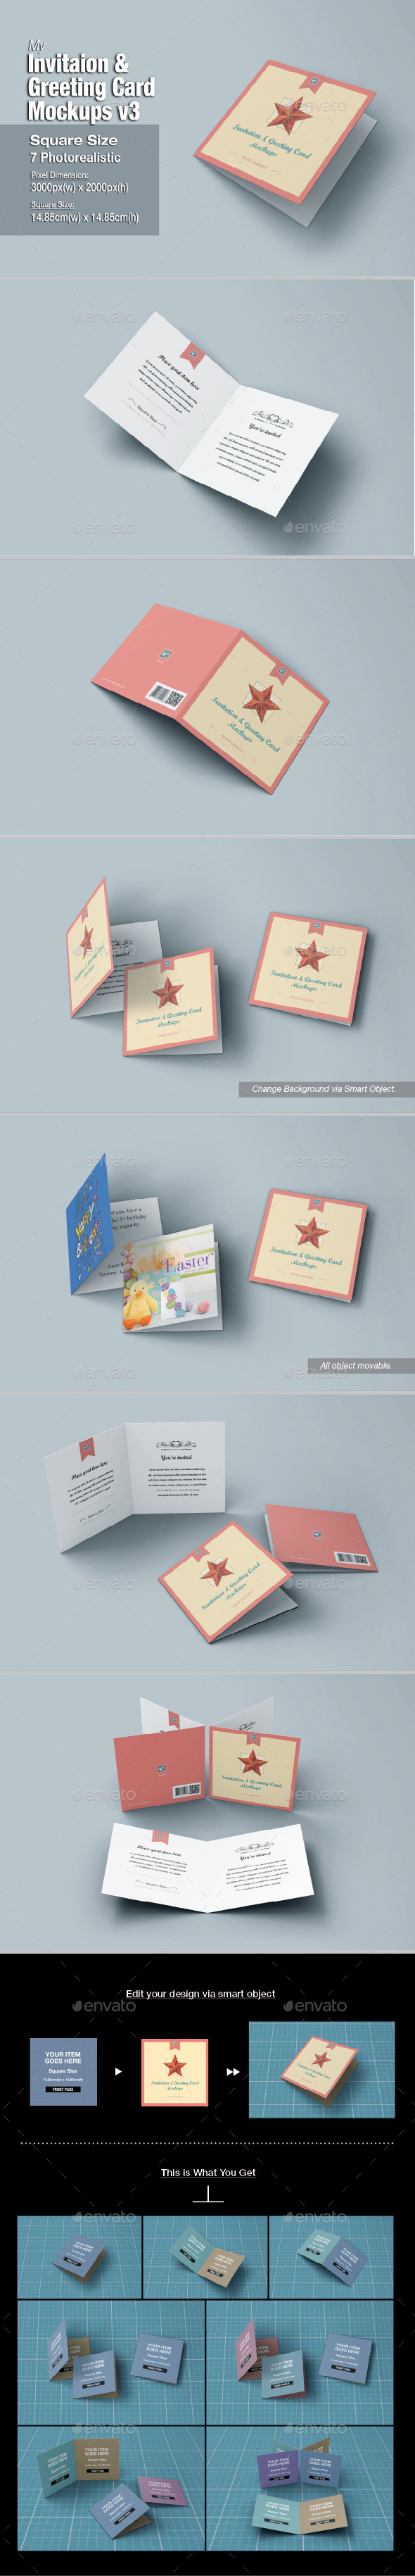 GraphicRiver myGreeting Card Mock-up v3 10988545